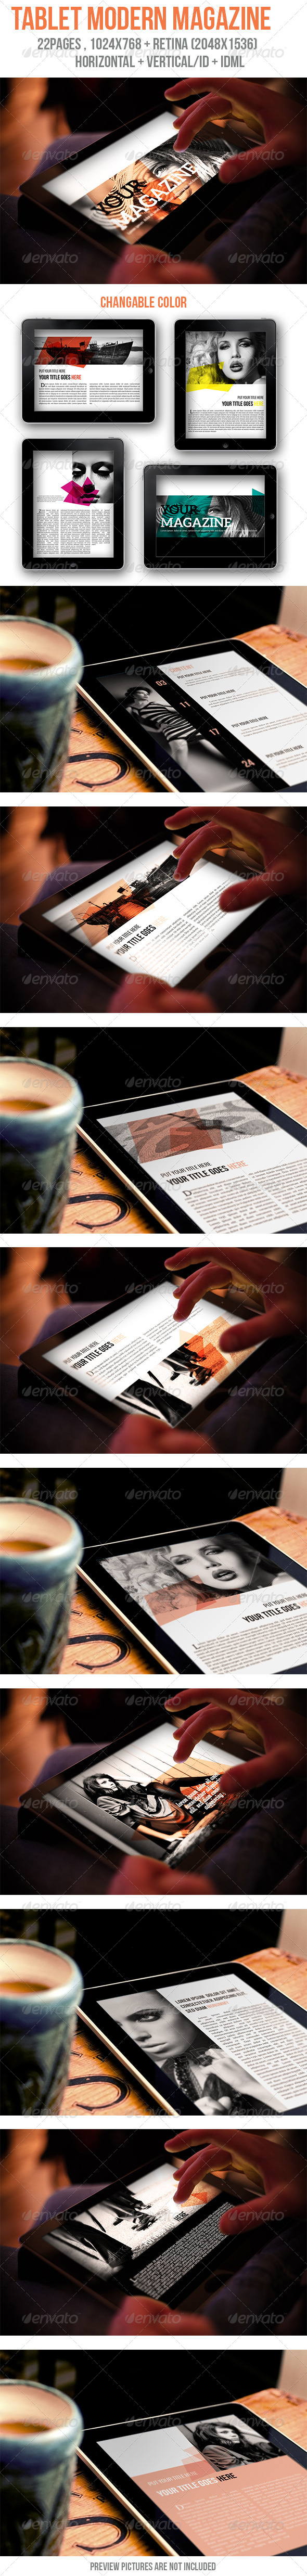 GraphicRiver Tablet Modern Magazine 6006075